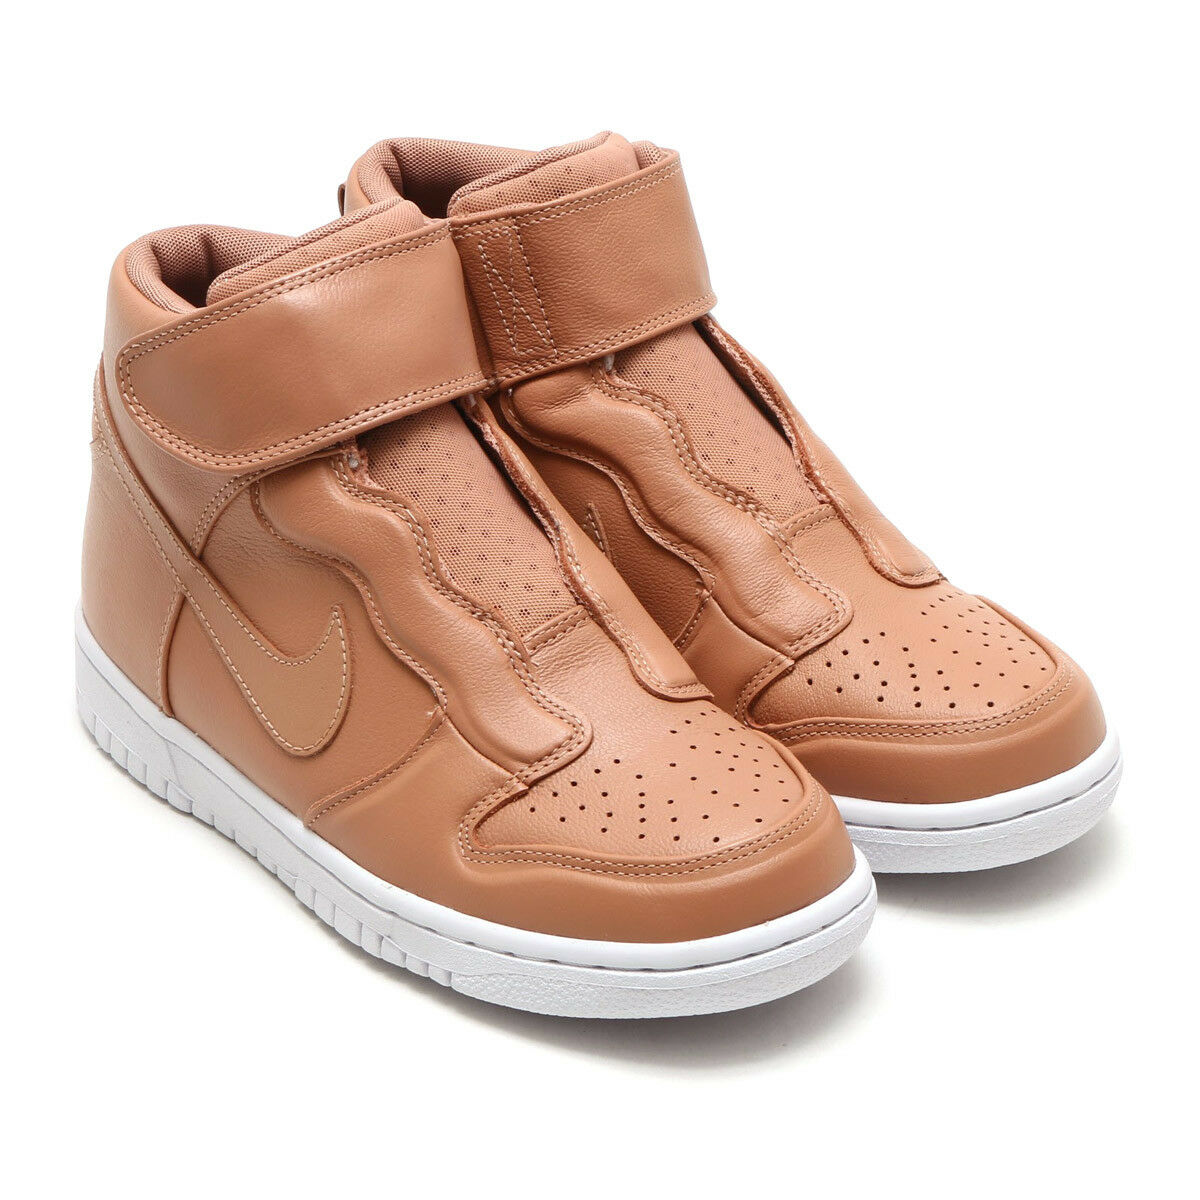 Nike Dunk High Ease Vachetta Tan Women's Boots Dusted Clay White 896187-200 Rare